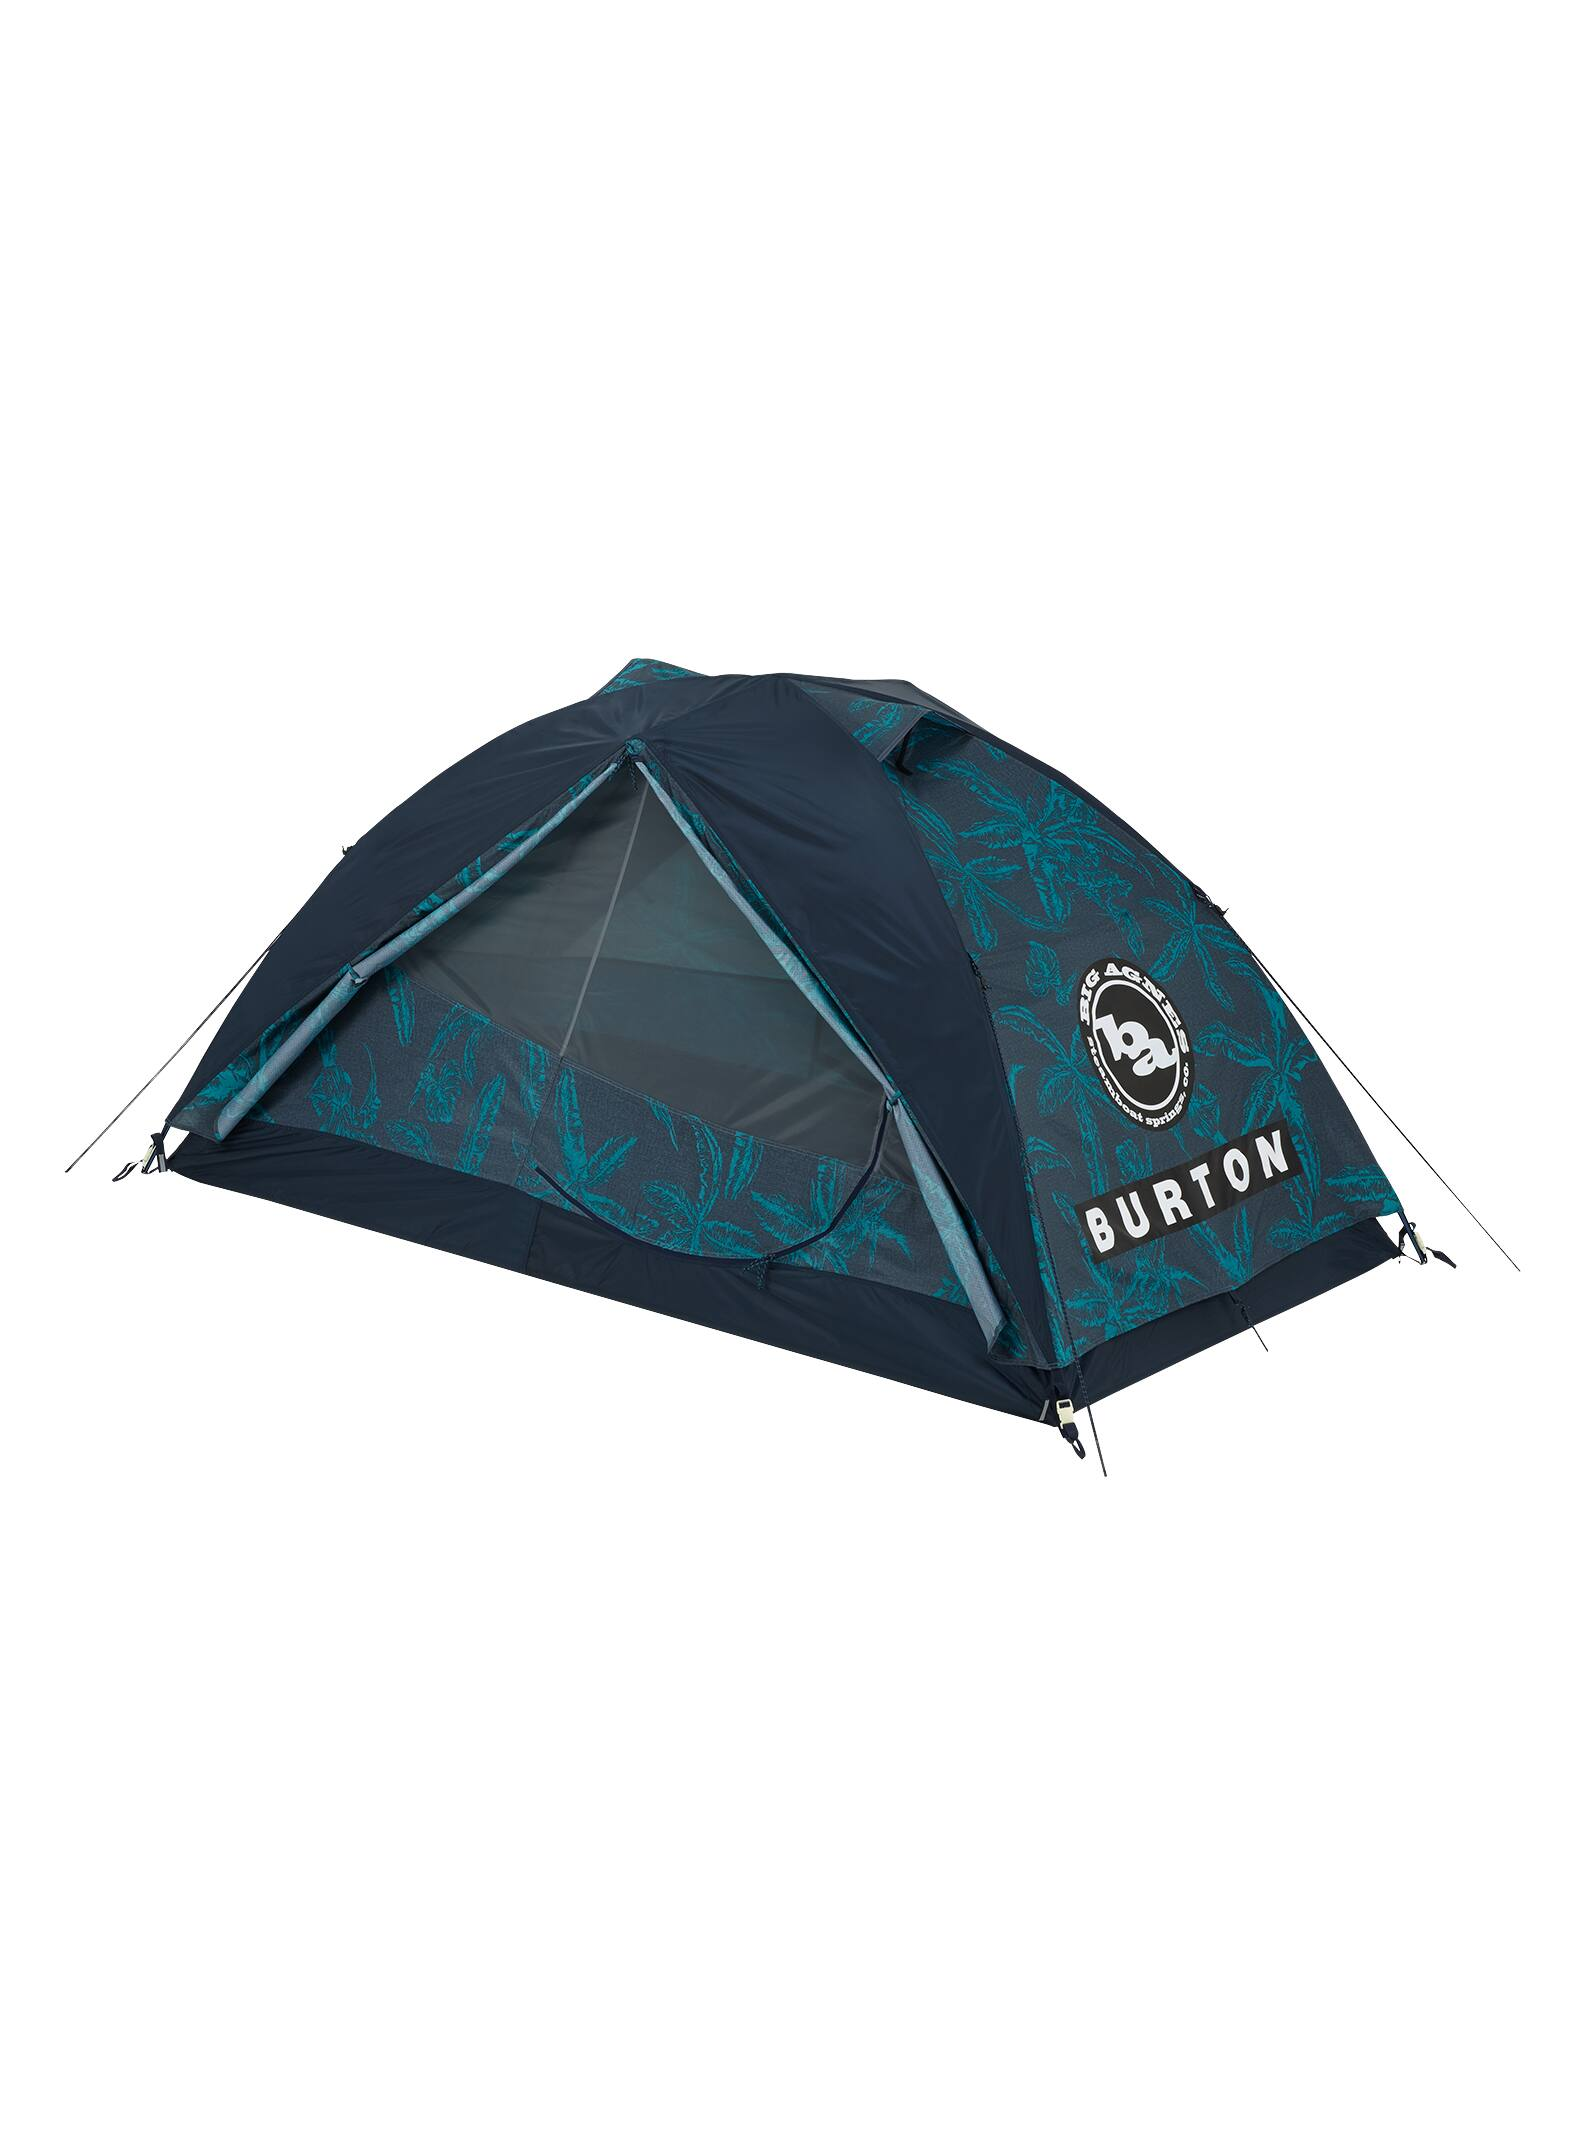 Backpacking Tent Big Agnes Blacktail